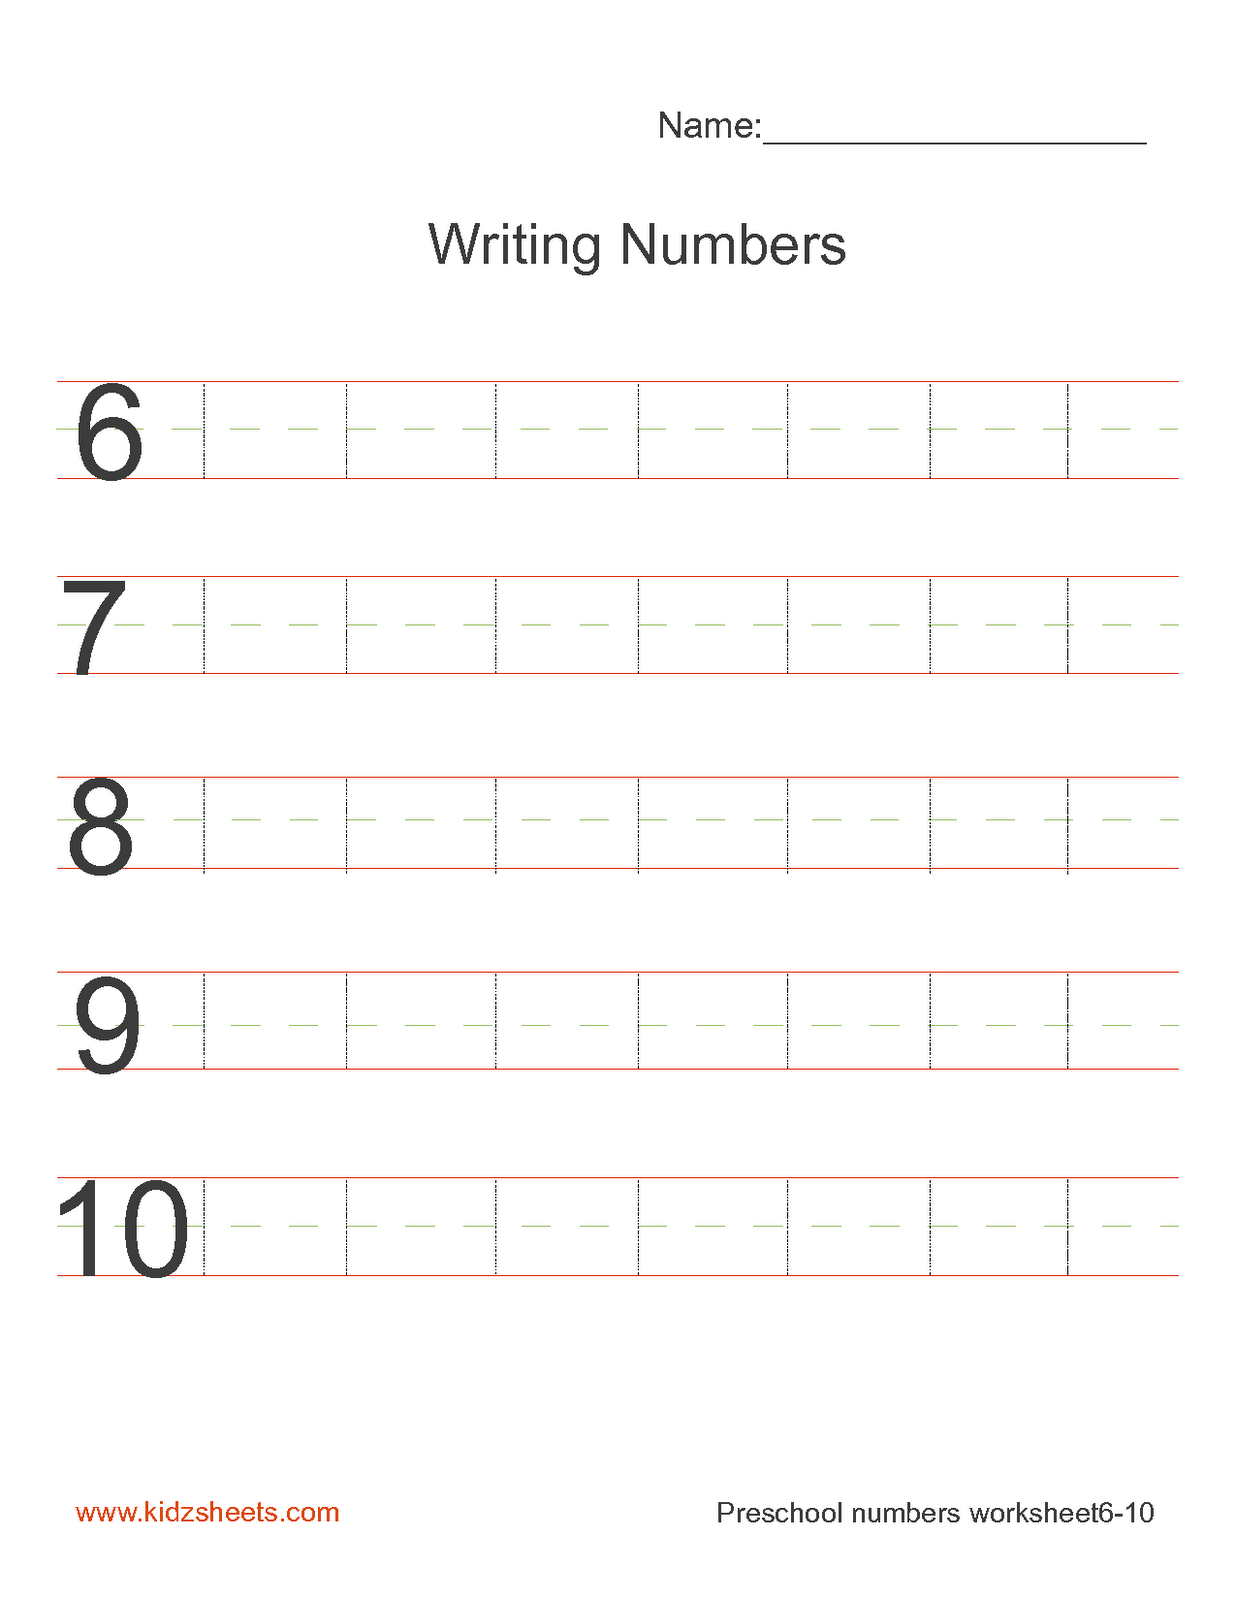 ... Number 10 Worksheet. on missing letter worksheet generator free